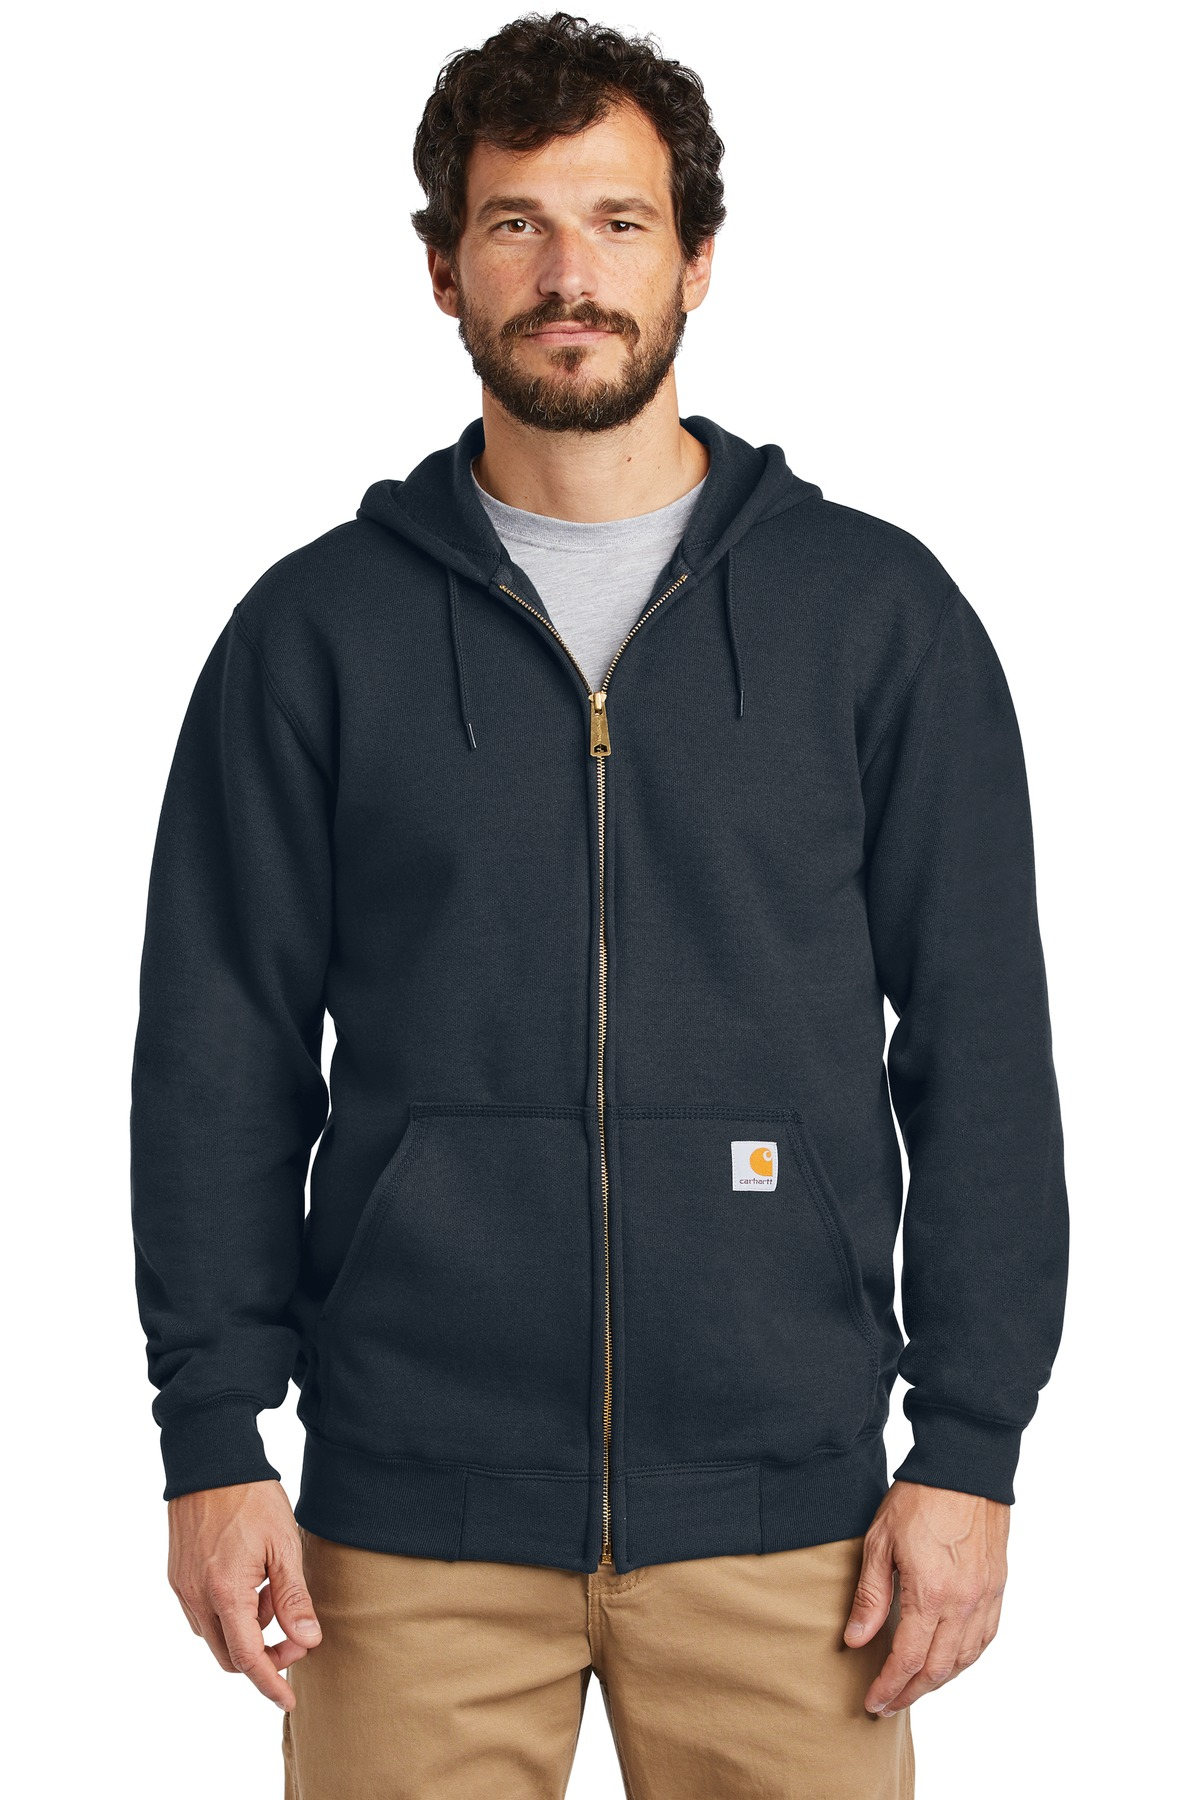 Carhartt  ®  Midweight Hooded Zip-Front Sweatshirt. CTK122 - New Navy